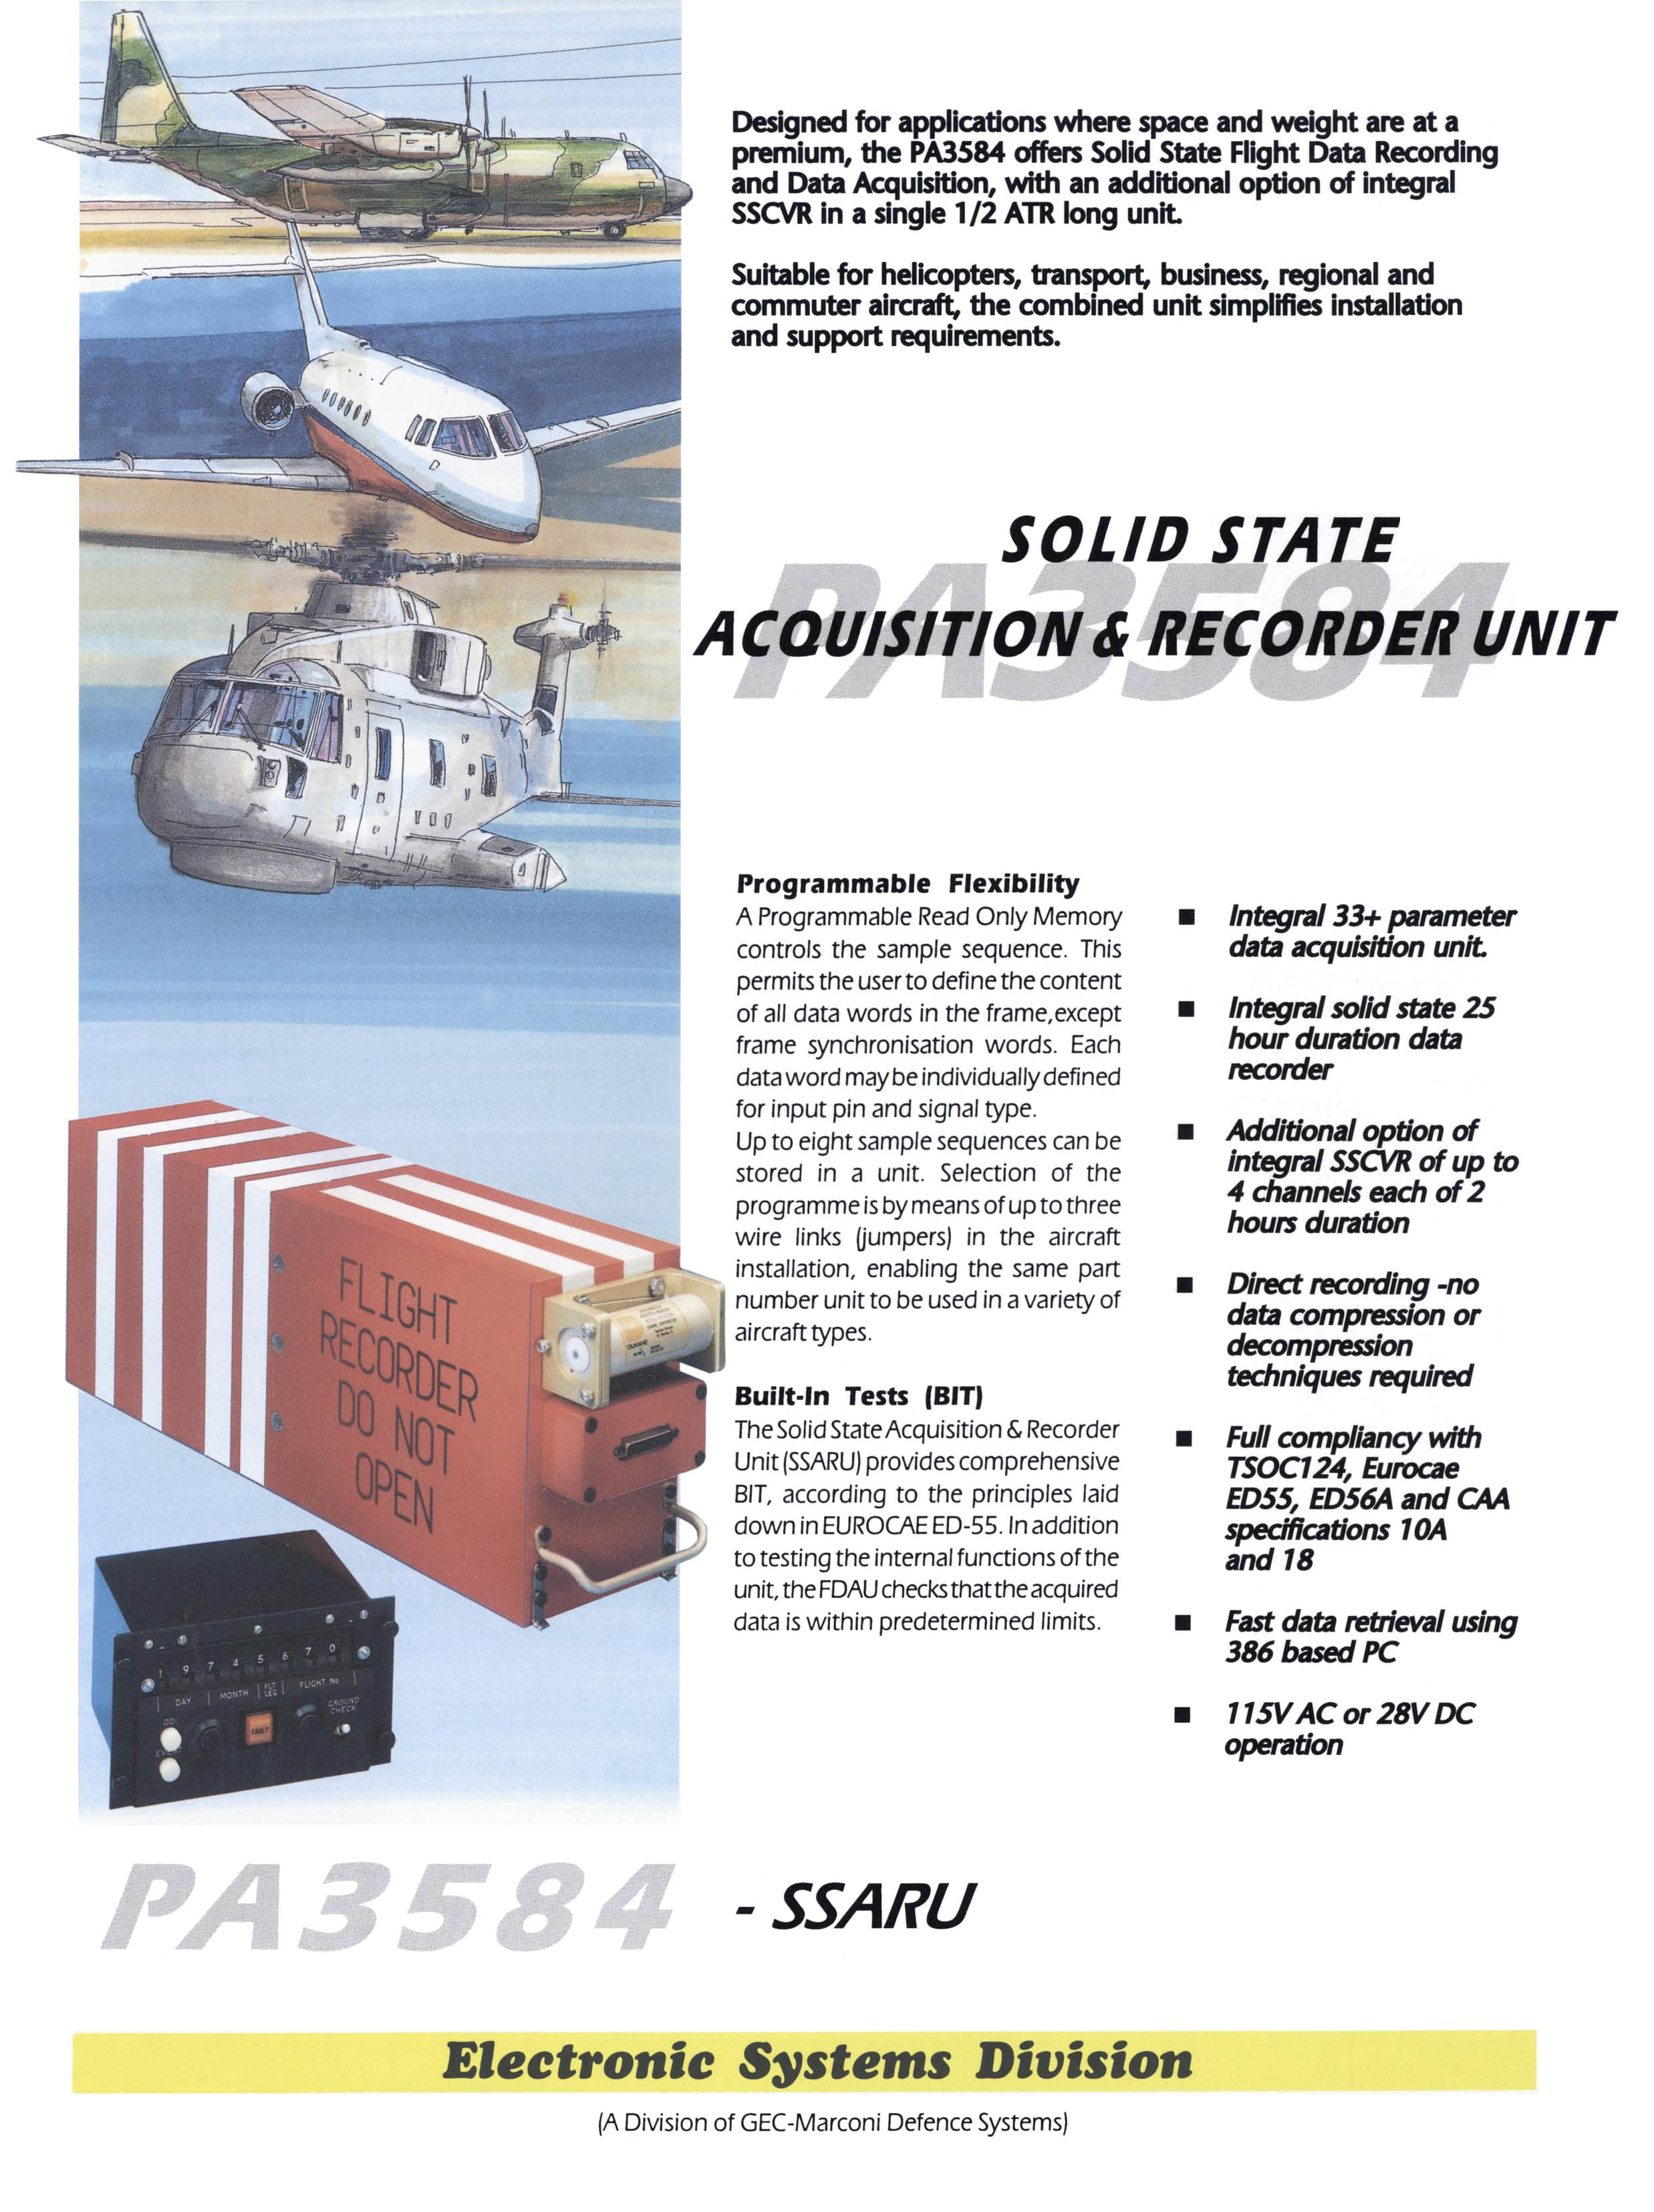 Solid State Acquisition & Recorder Unit PA3584 (crash recorder)